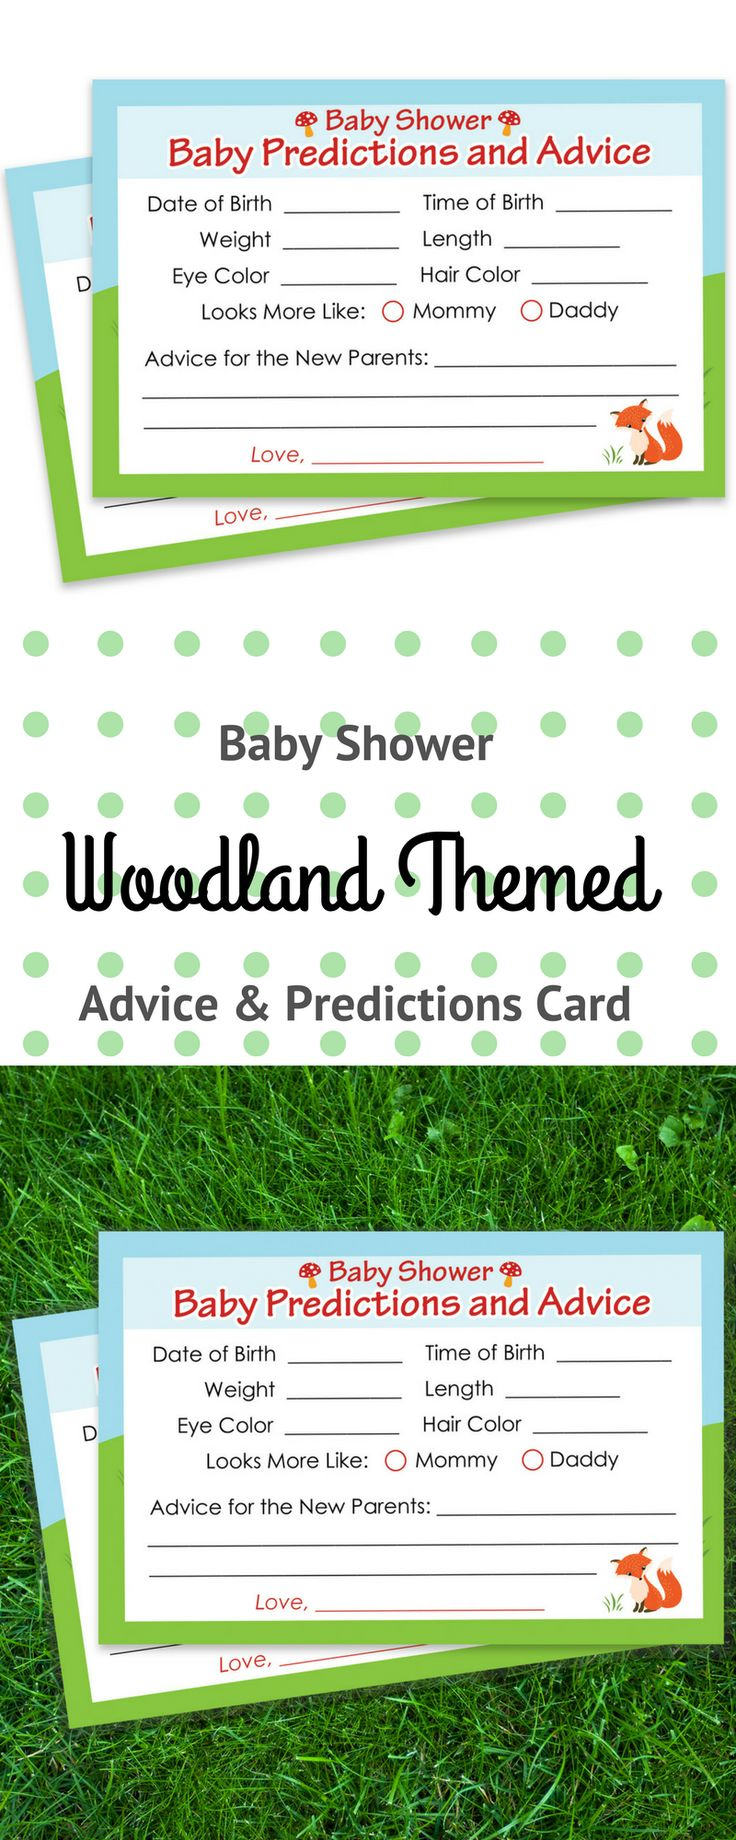 Baby Shower Advice and Predictions Cards - for Up to 20 Guests.Woodland AnimalsThemeis Perfect for OutdoorBaby Showers, Boy Baby Showers, or Gender Neutral Baby Showers. #woodlandbabyprediction #babyshowergame #woodlandbabyshower #woodlandanimals